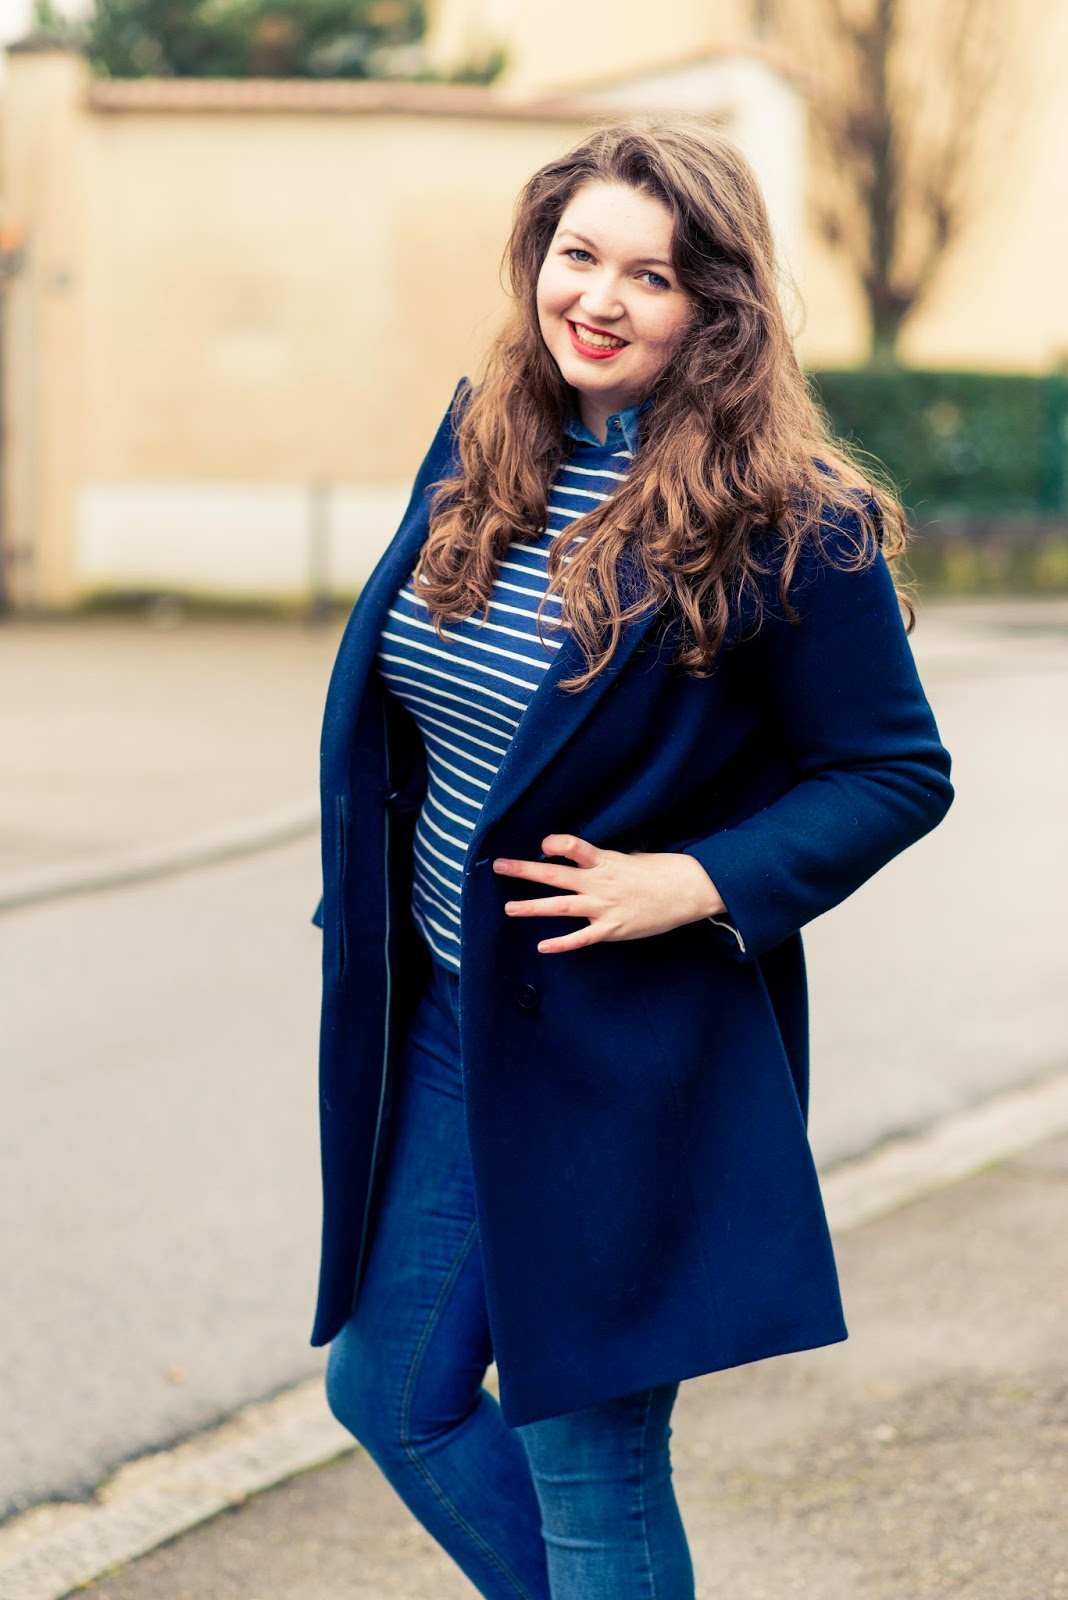 french lookbook blue look blog fashion blogger liquidgrain liquid grain